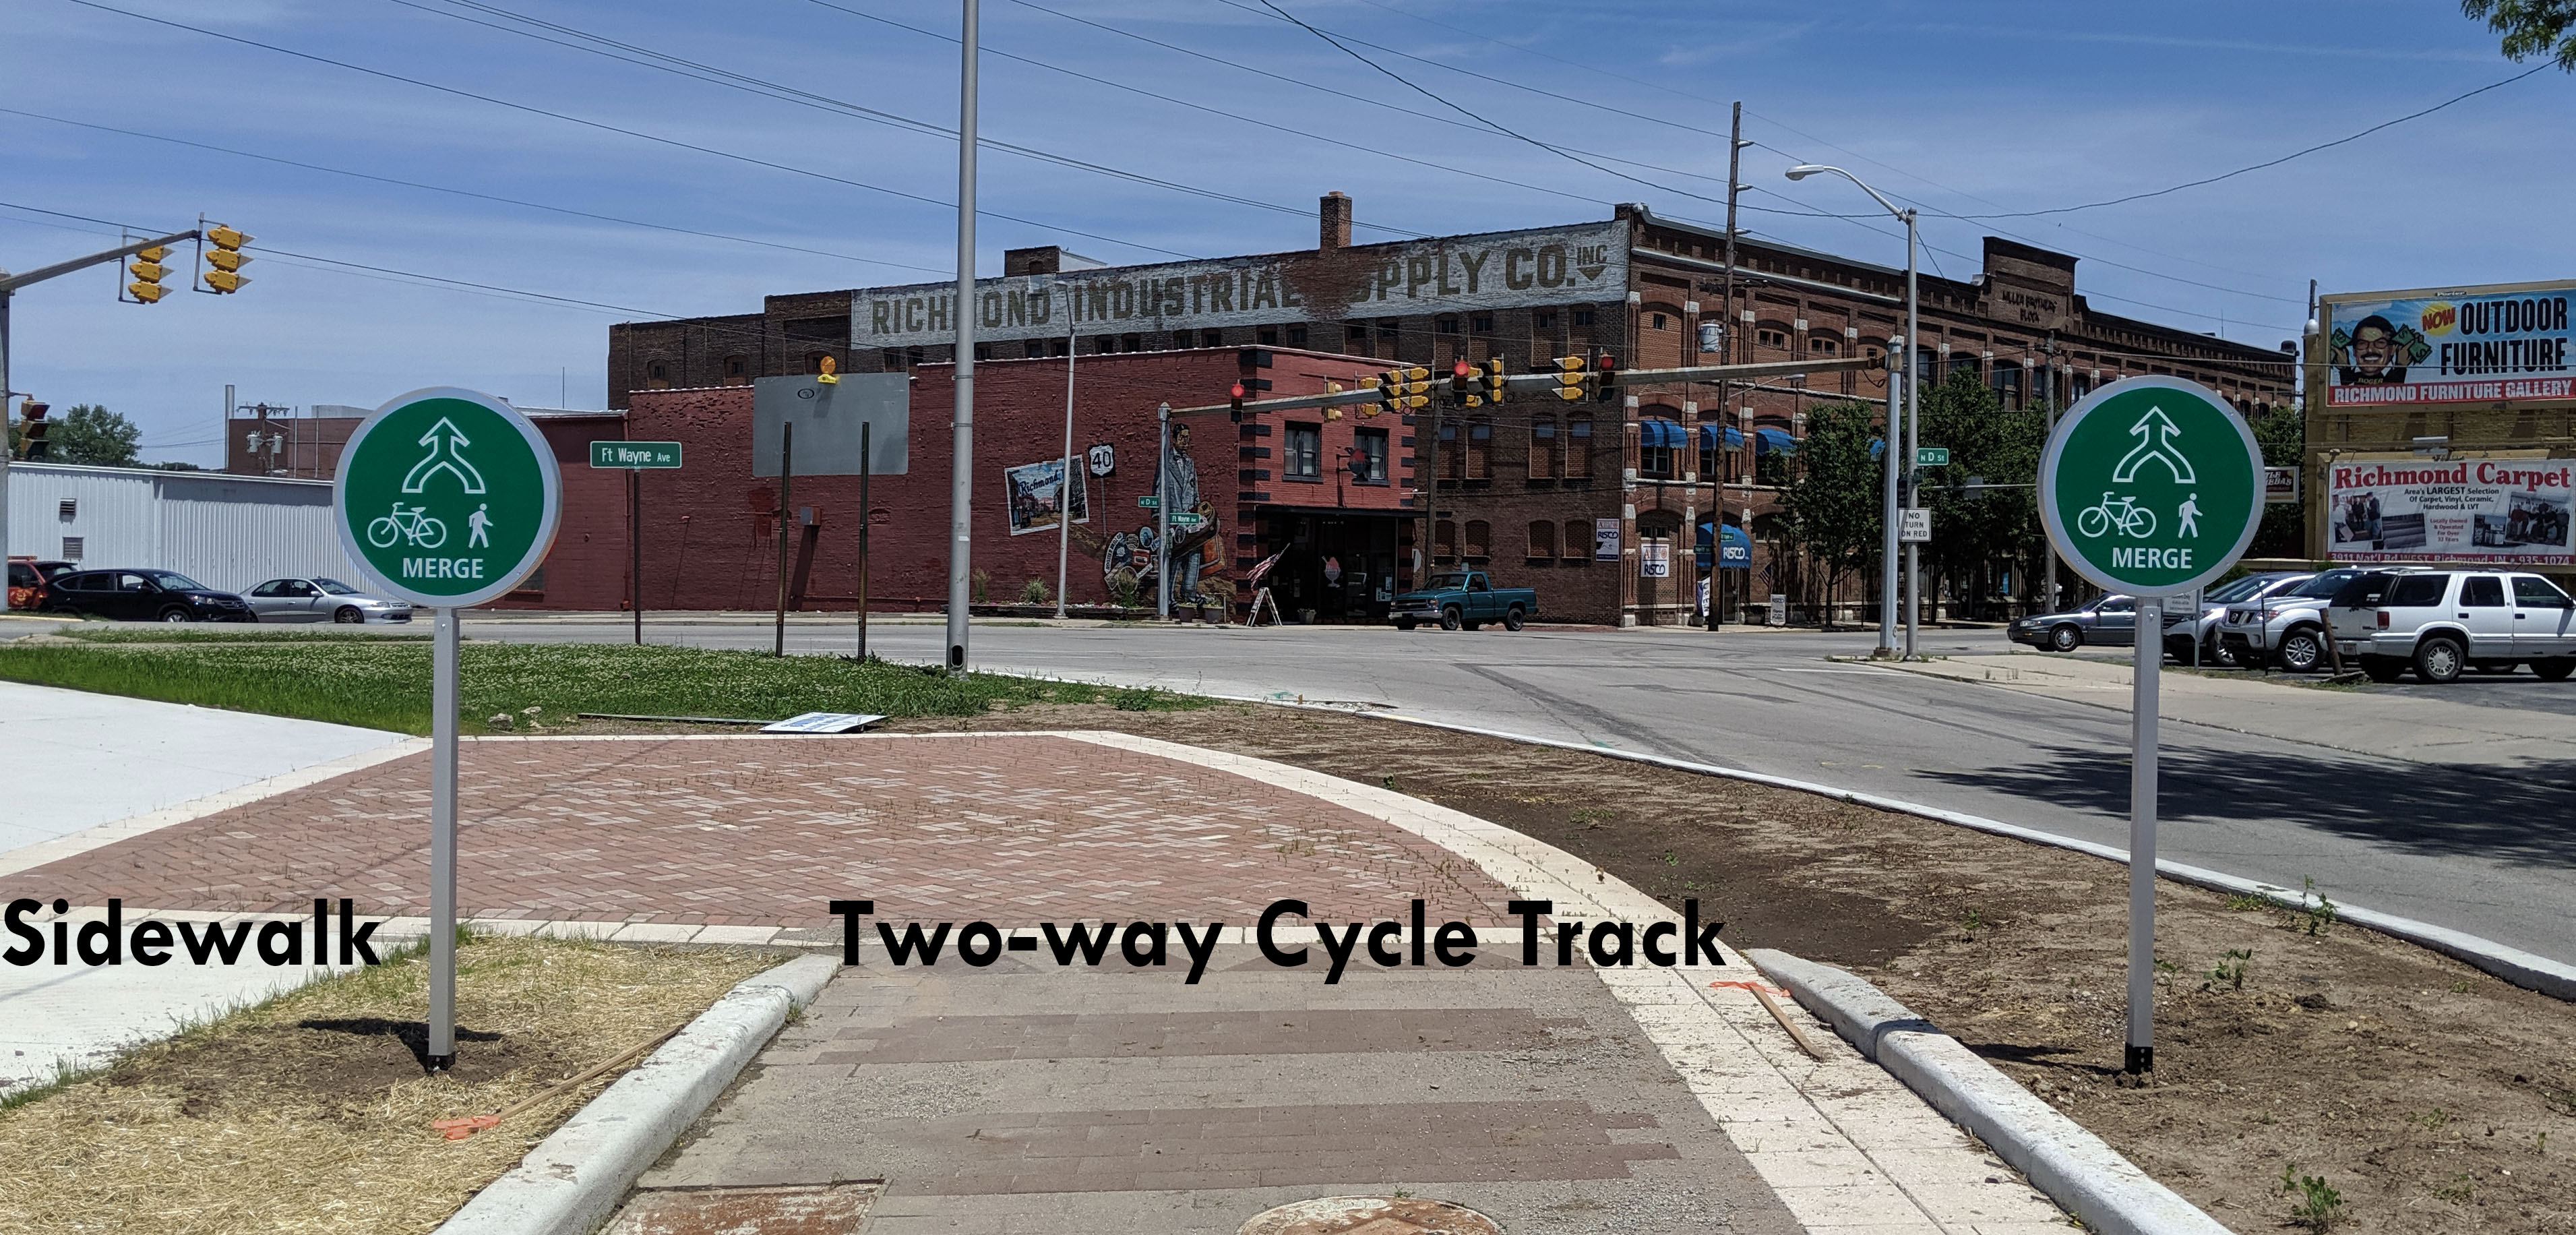 Sidewalk and Two-way cycle track signage